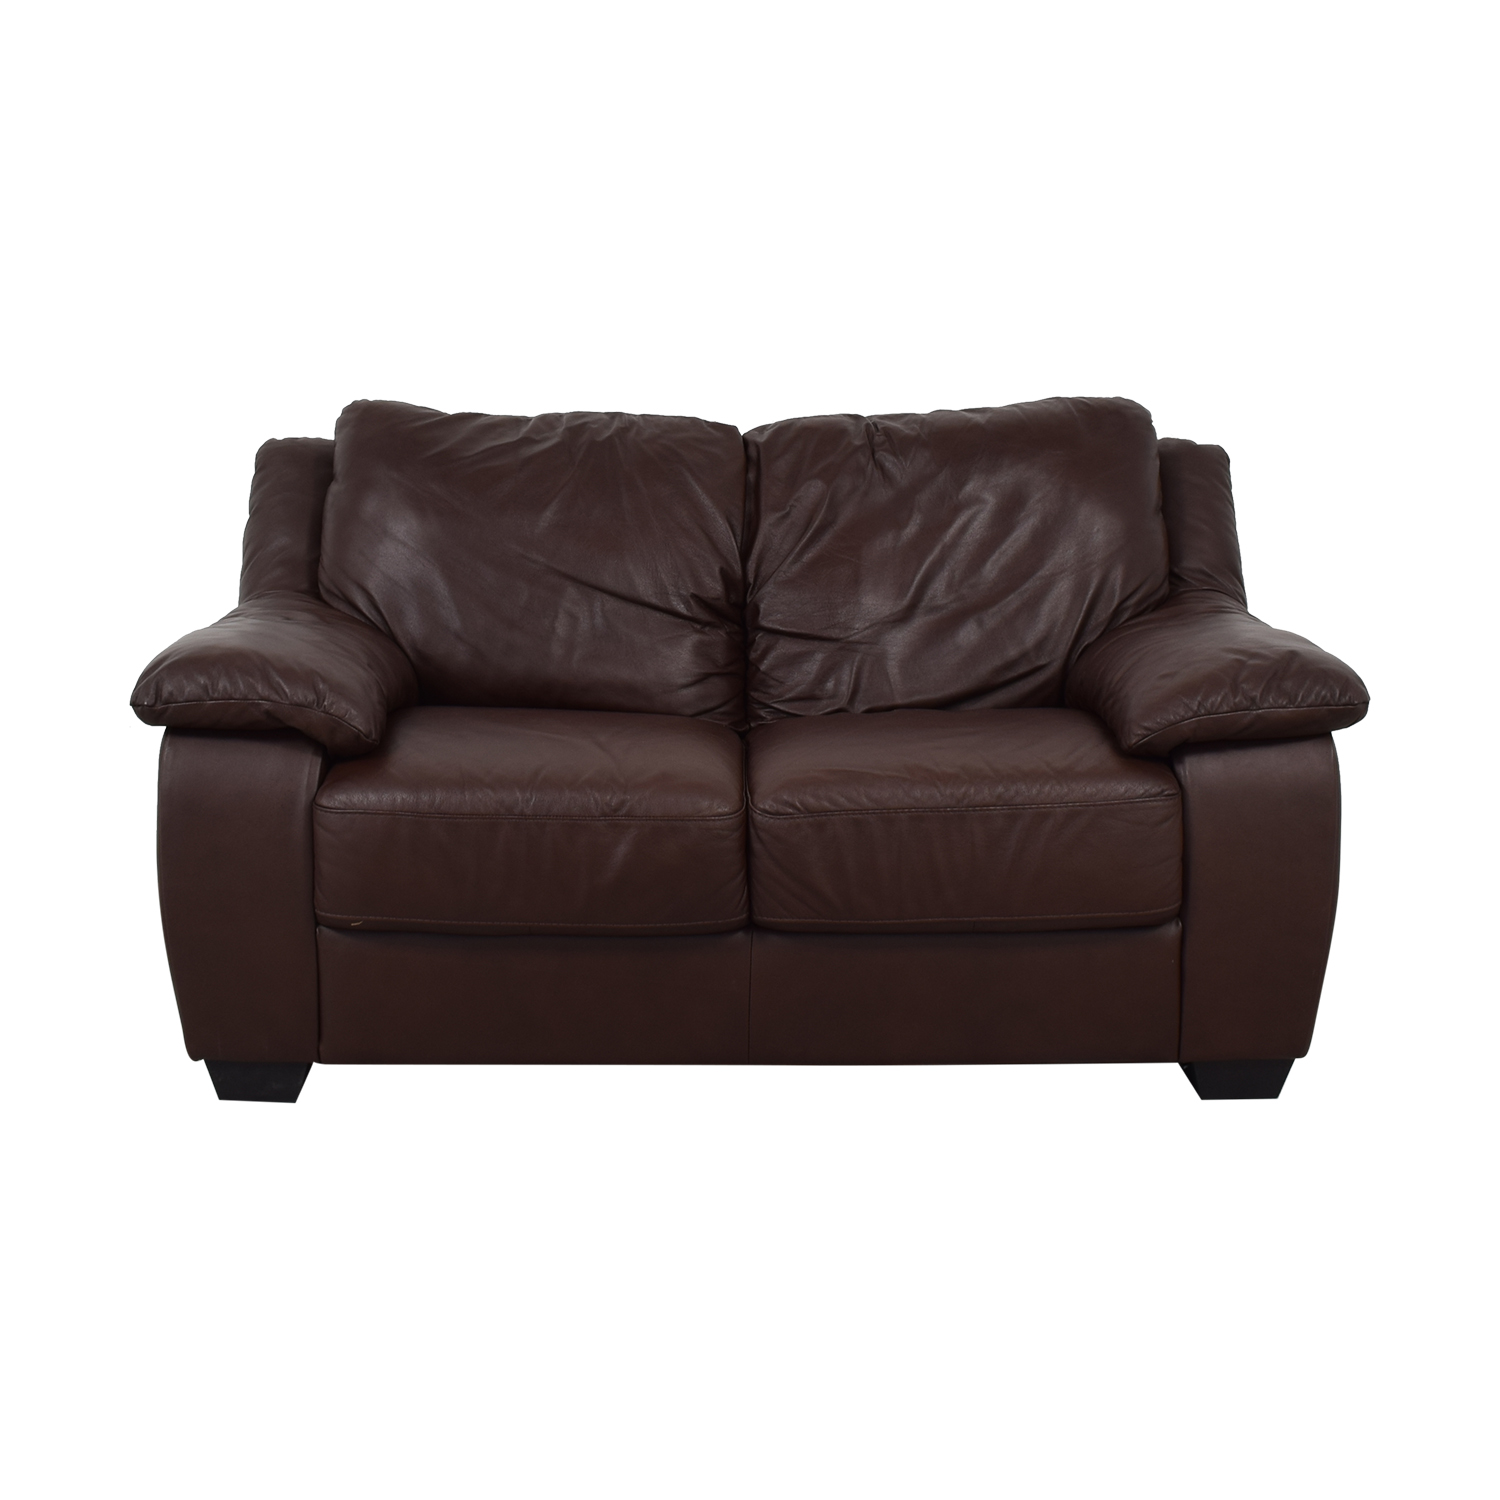 shop Natuzzi Brown Two-Cushion Loveseat Natuzzi